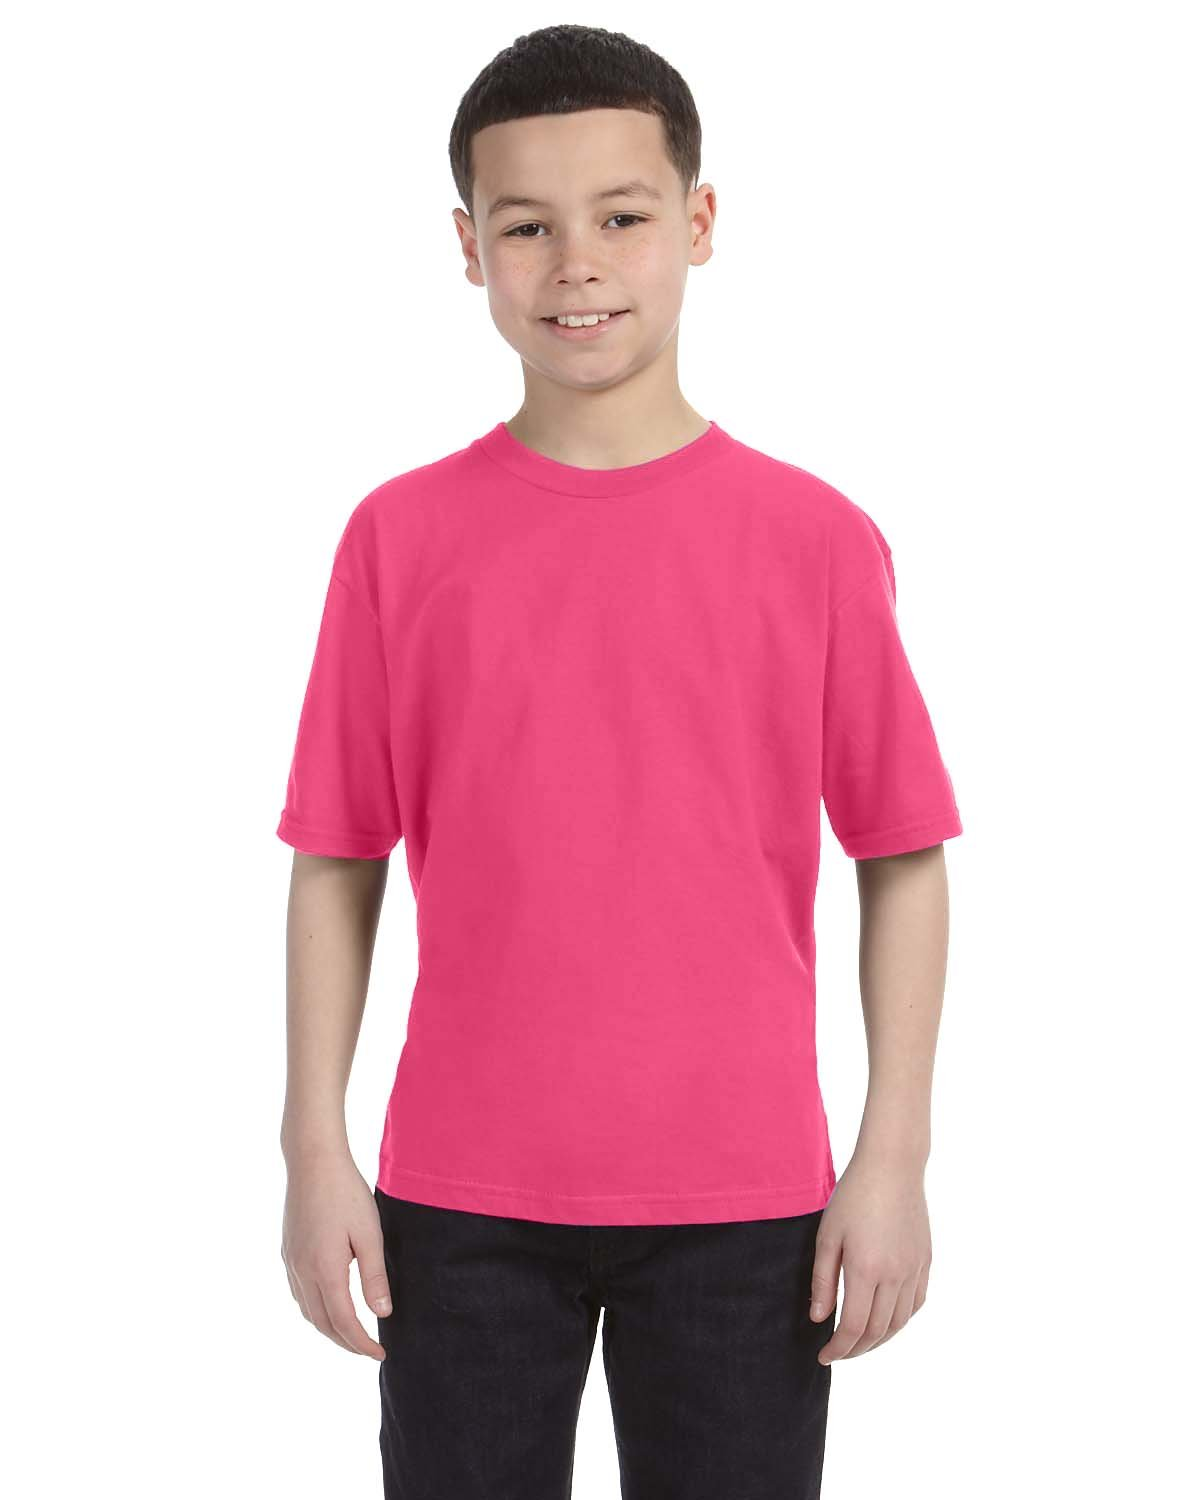 Anvil Youth Lightweight T-Shirt NEON PINK